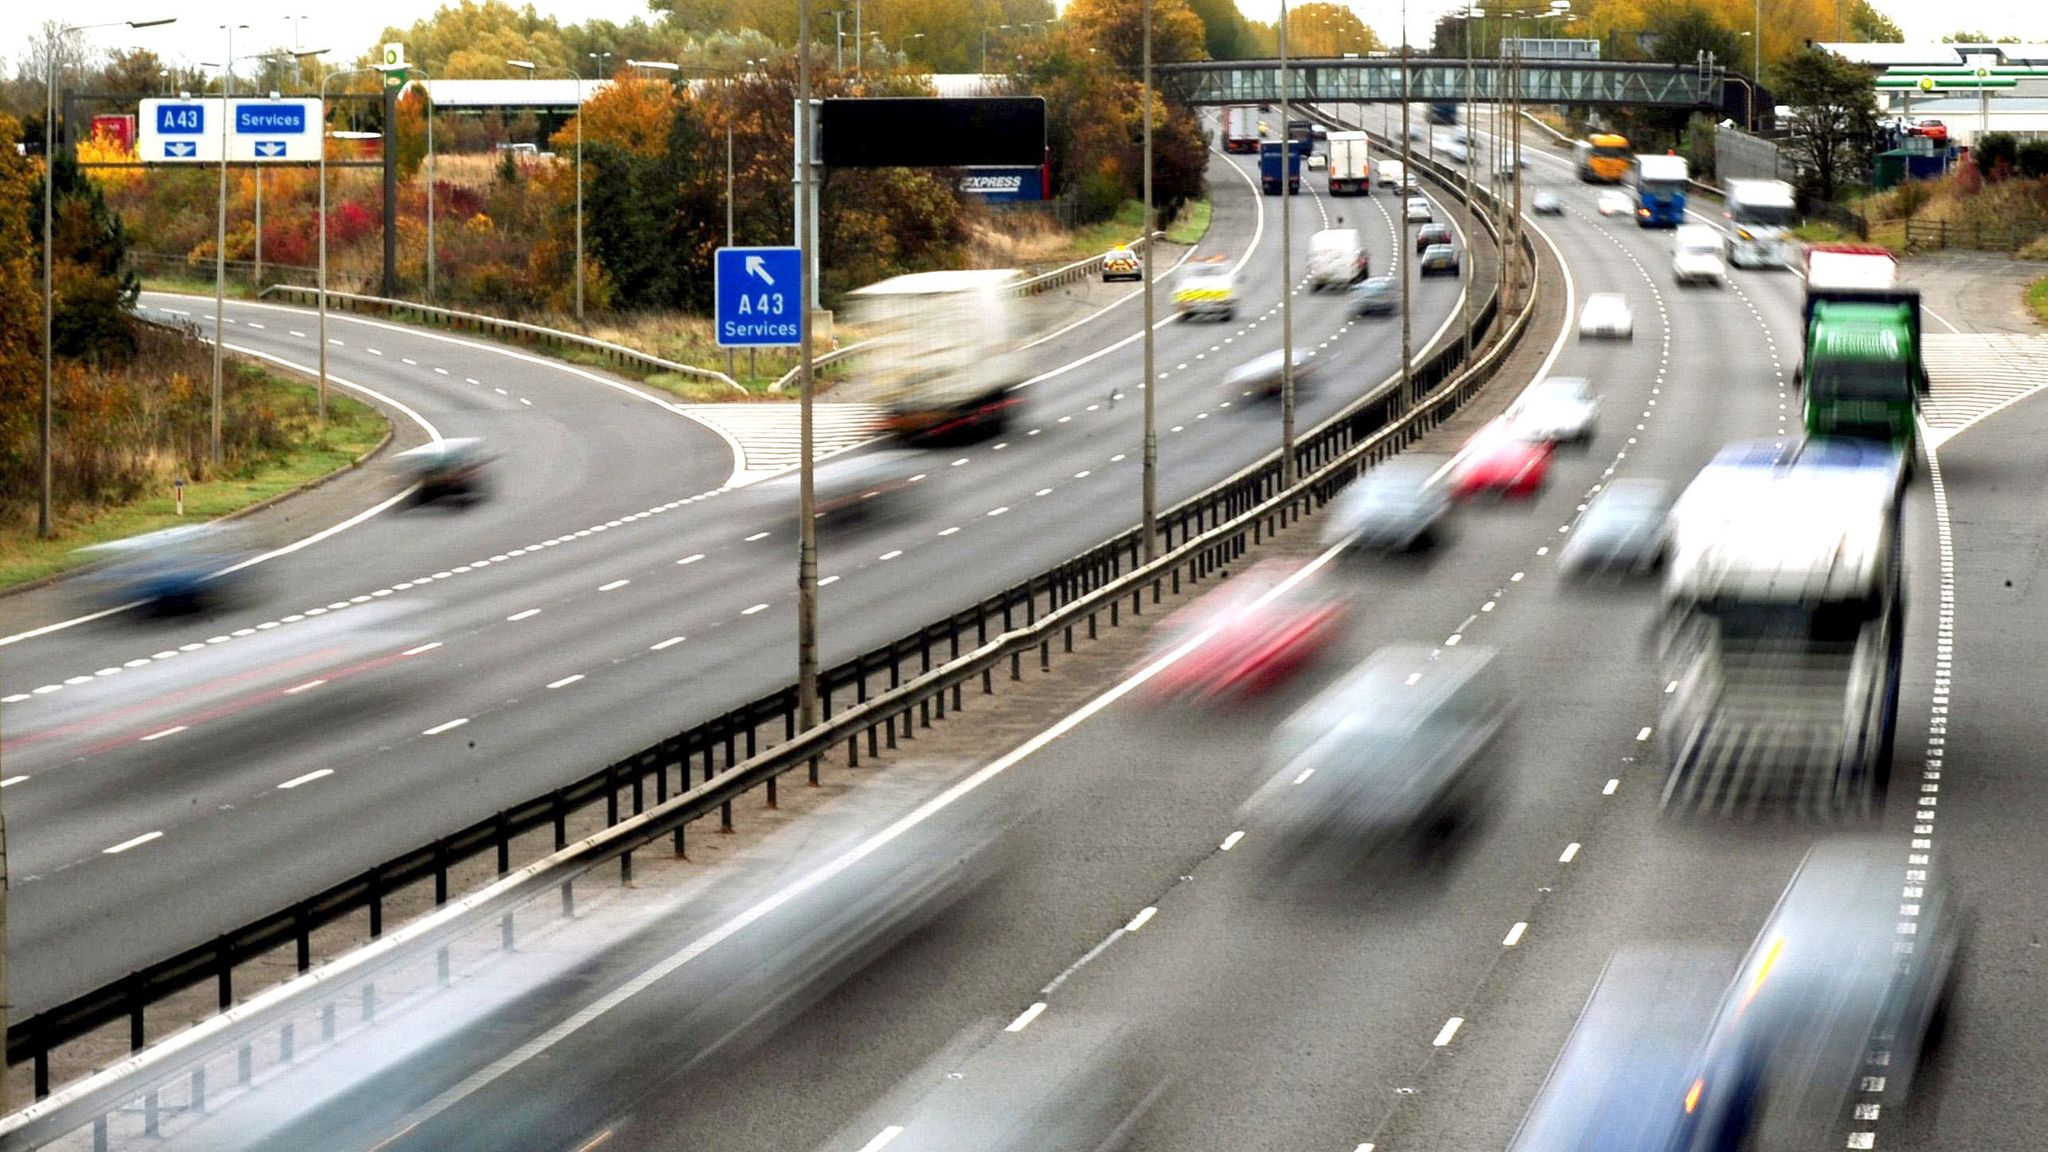 Self-Driving Cars Could Be Allowed On UK Motorways By The End Of This Year